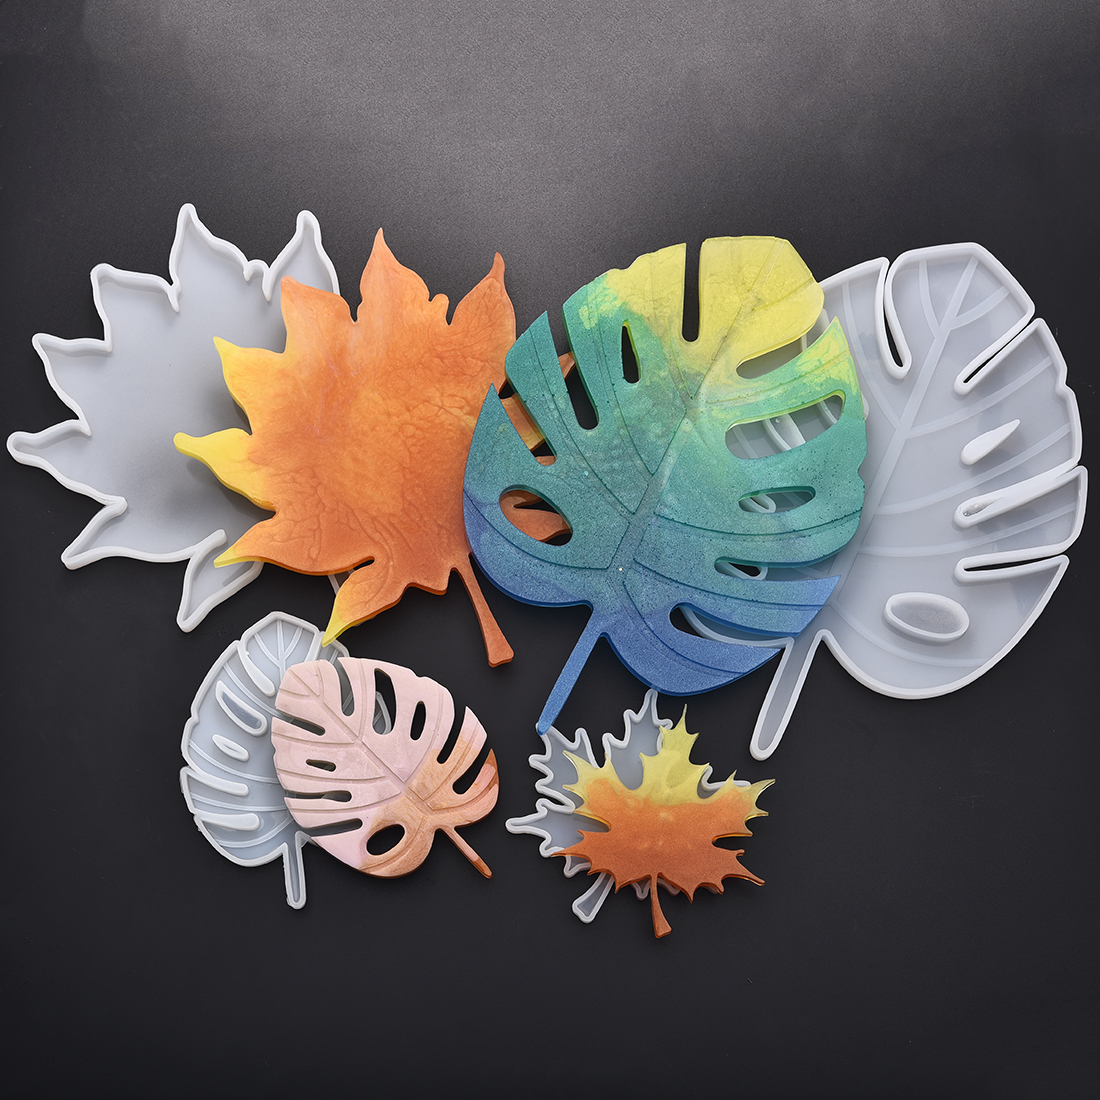 Casting Coaster Silicone Molds Maple Leaf Epoxy Resin Molds DIY Coasters Mould Jewelry Making Tools